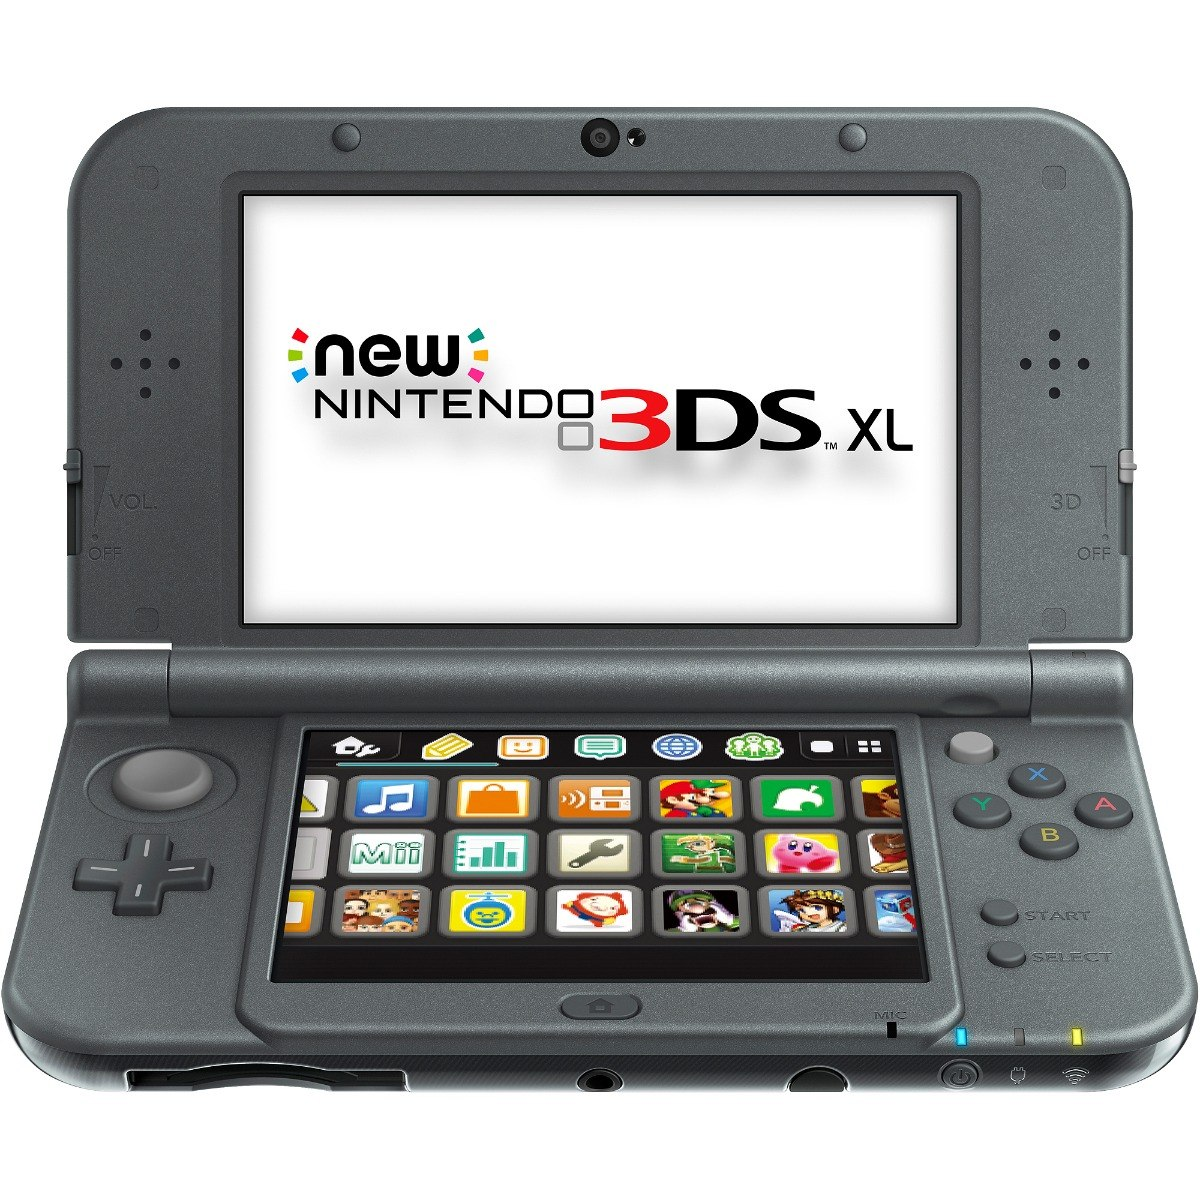 New 3ds Xl + Freeshop + Regalos: Cargador Y Mica Pantallas